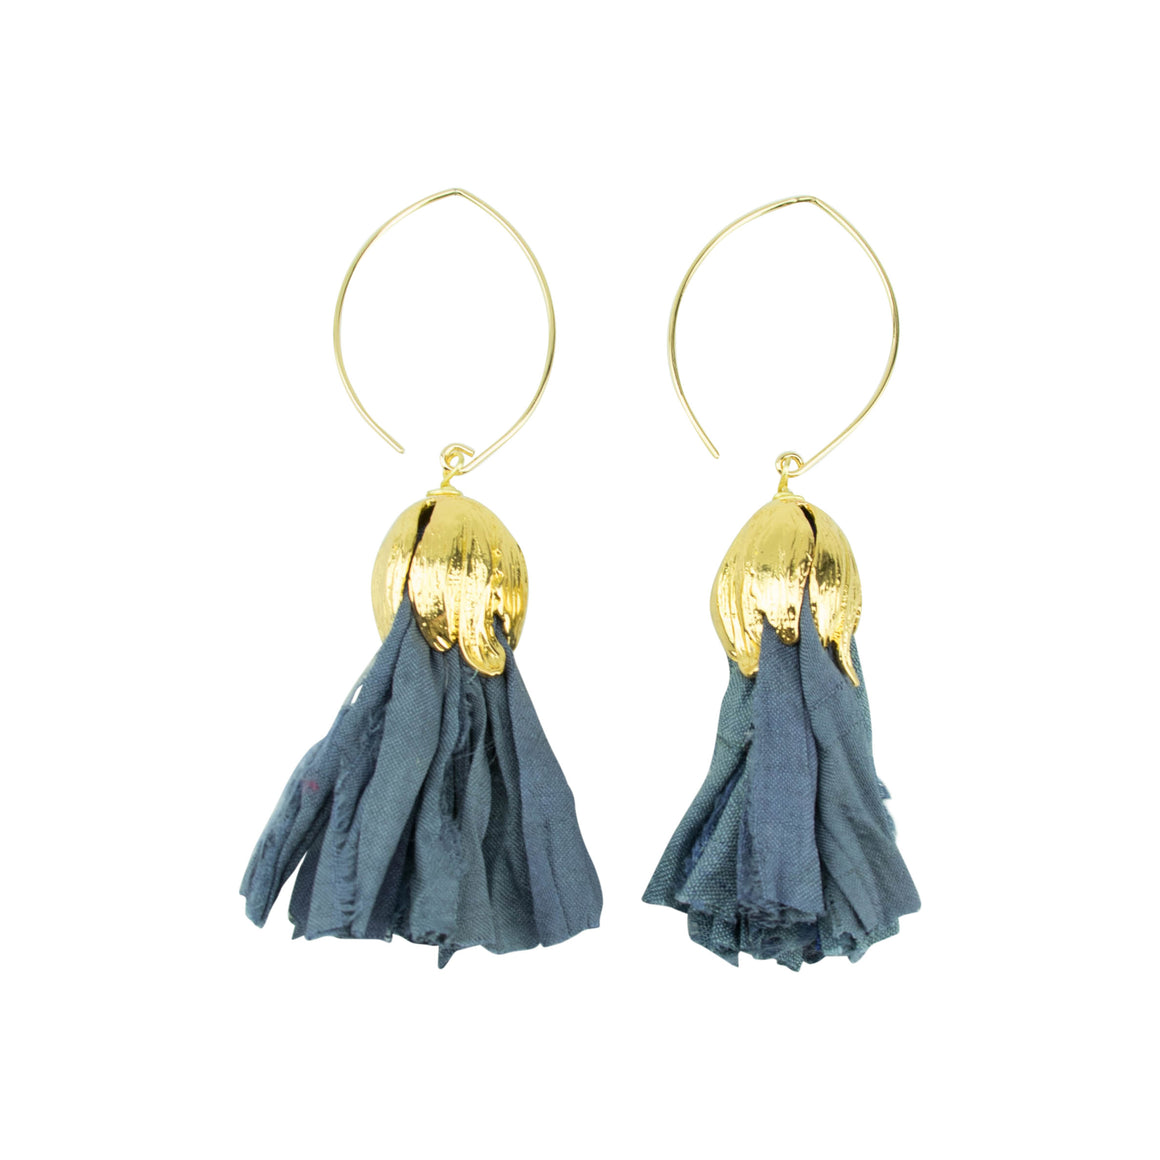 Vintage Silk Hoopla Drop Earring in Mediterranean Blue